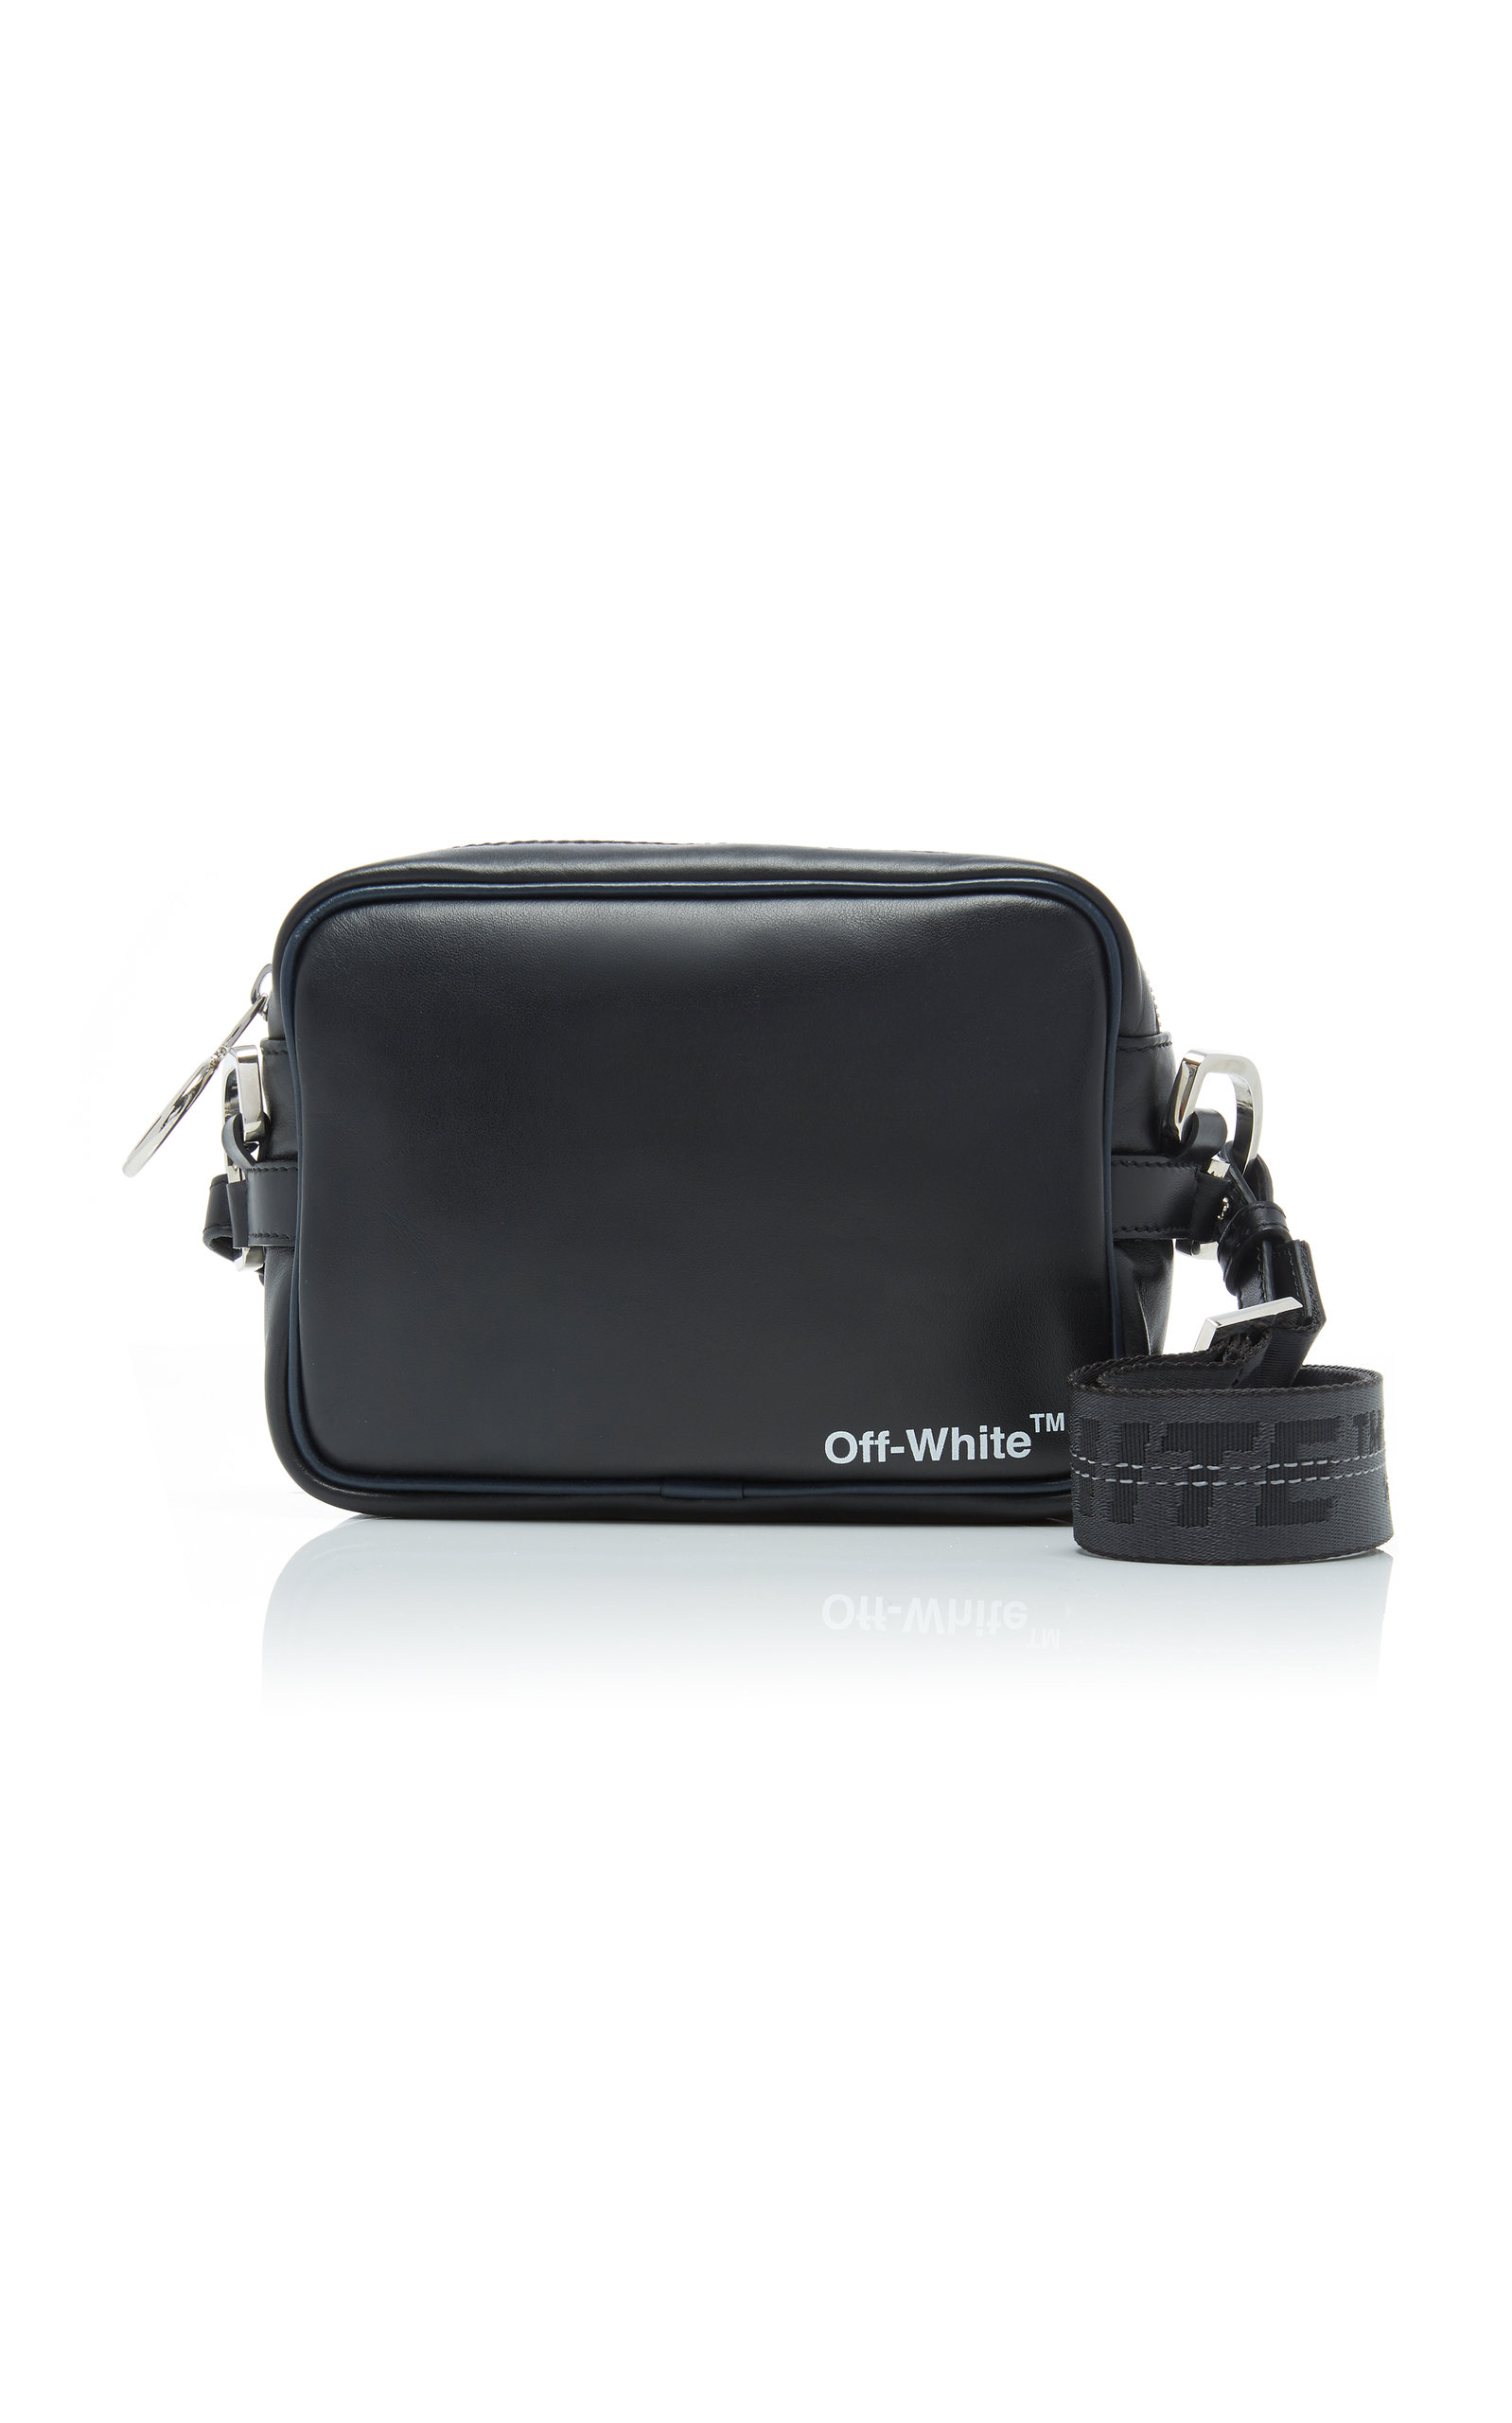 a3703a992c2d1 Printed Leather Crossbody Bag by Off-White c o Virgil Abloh